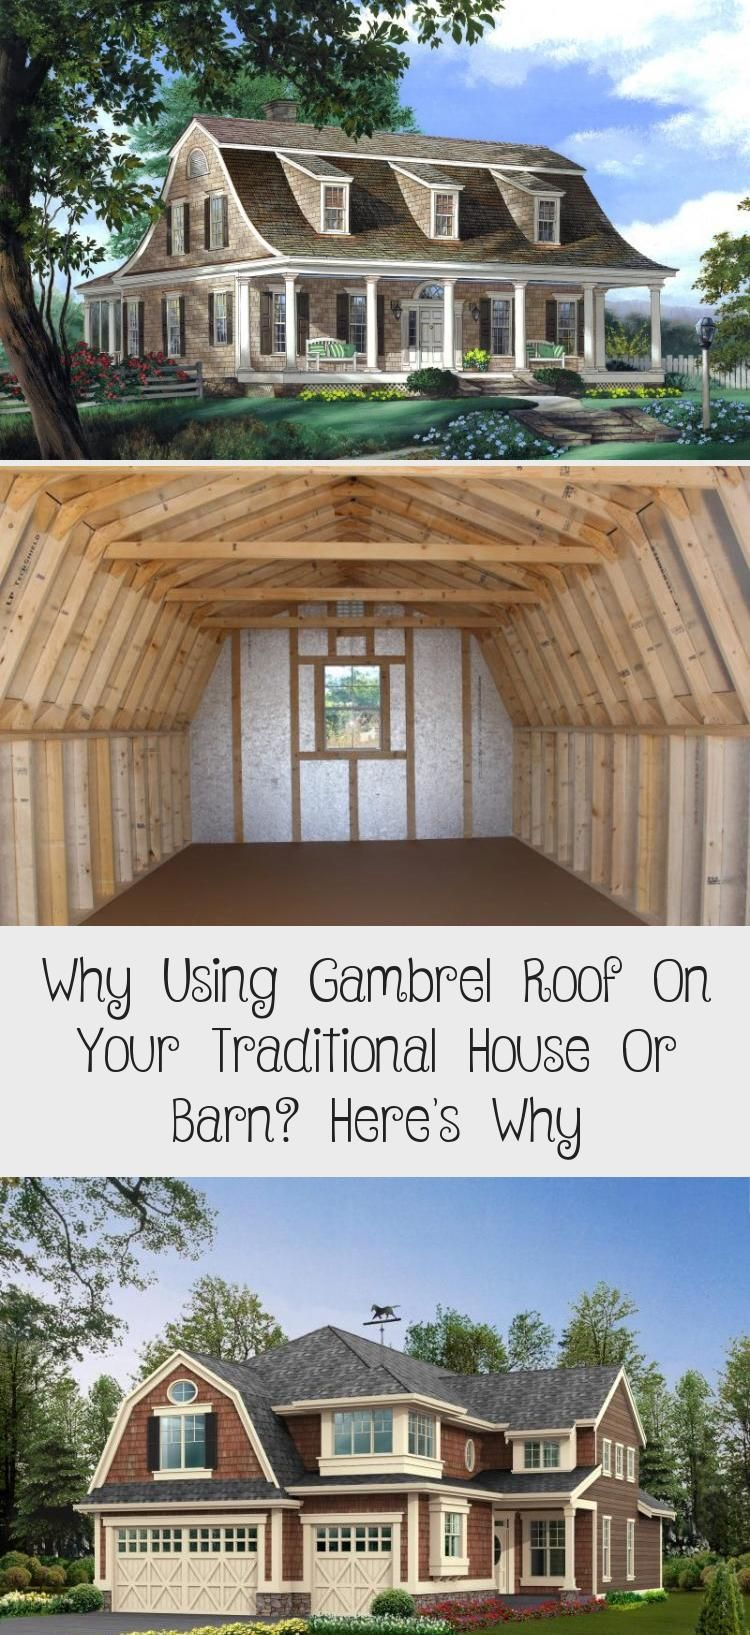 Find And Save Ideas About Gambrel Roof On Pinterest See More Ideas About Storage Building Homes Gambrel Barn And Small M Gambrel Roof Gambrel Gambrel Style